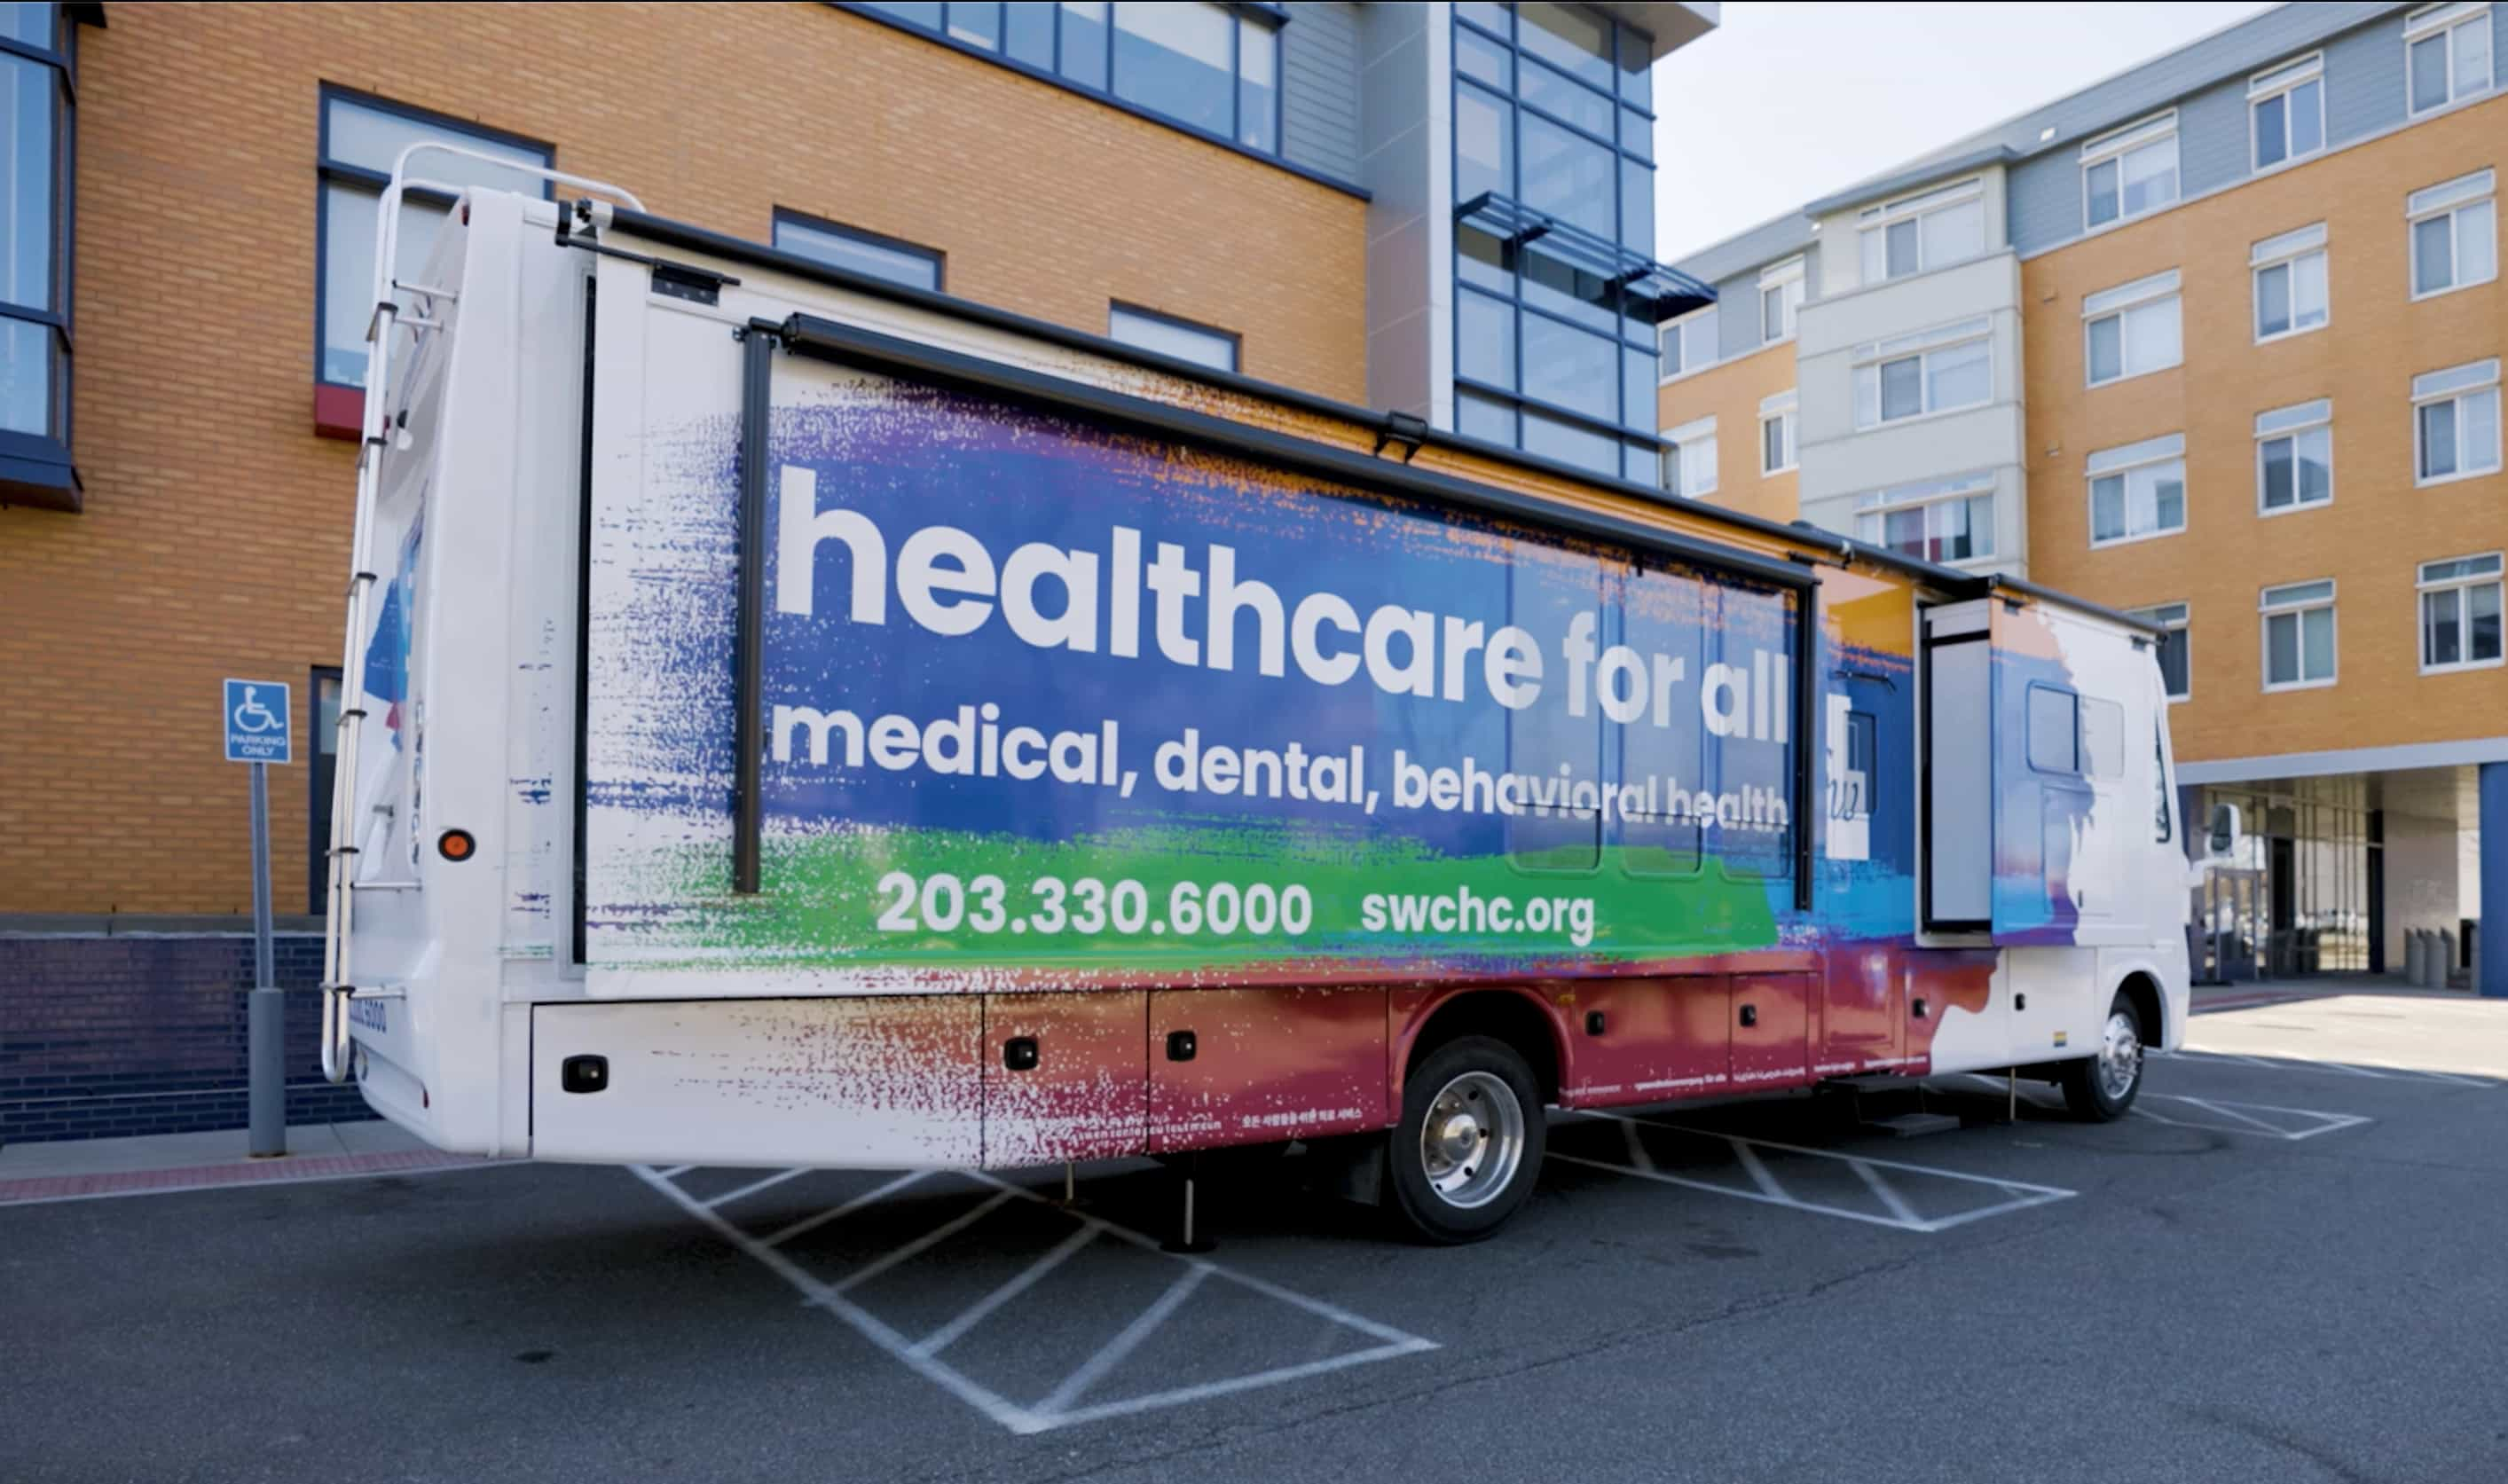 mobile healthcare marketing strategy